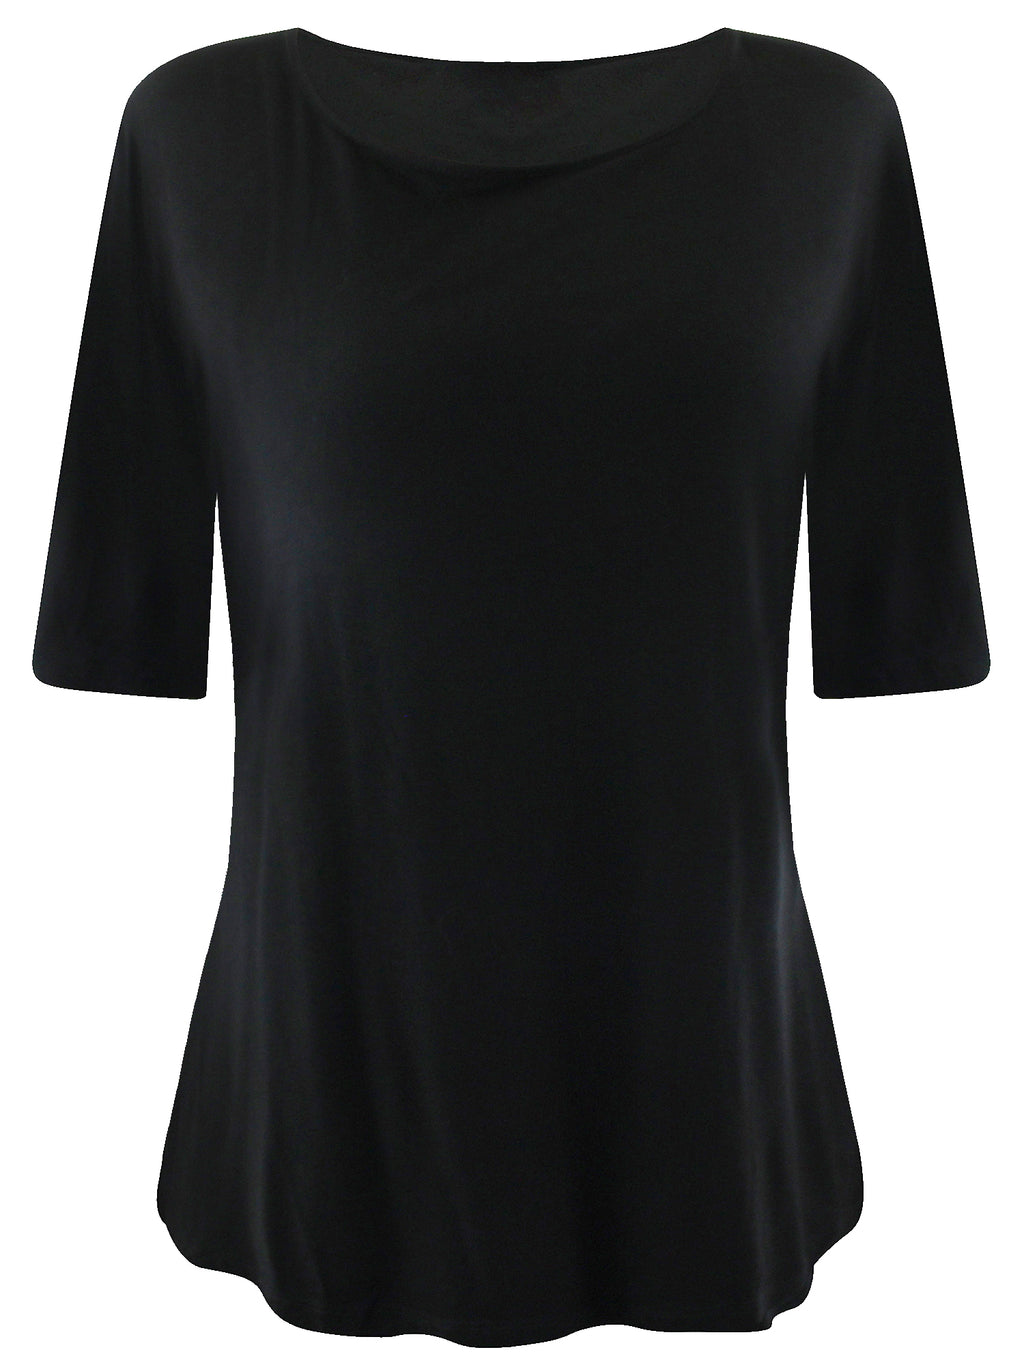 Womens Plus Size Bell Sleeve Tunic Top